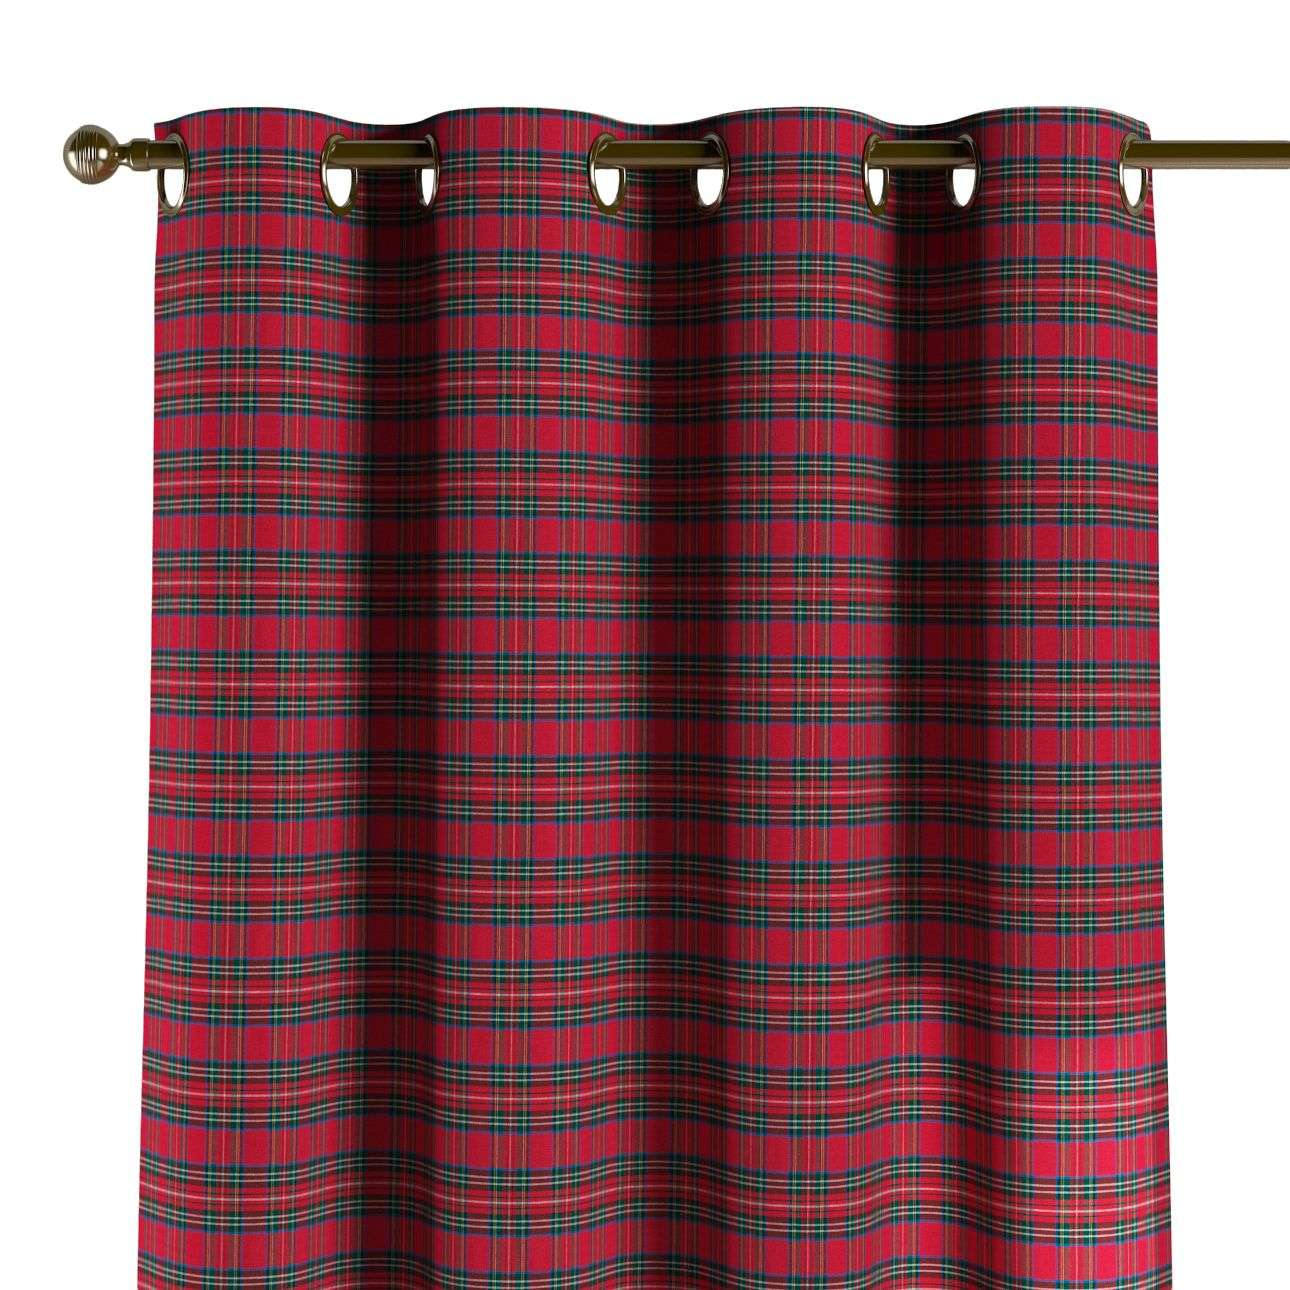 Eyelet curtains 130 x 260 cm (51 x 102 inch) in collection Bristol, fabric: 126-29